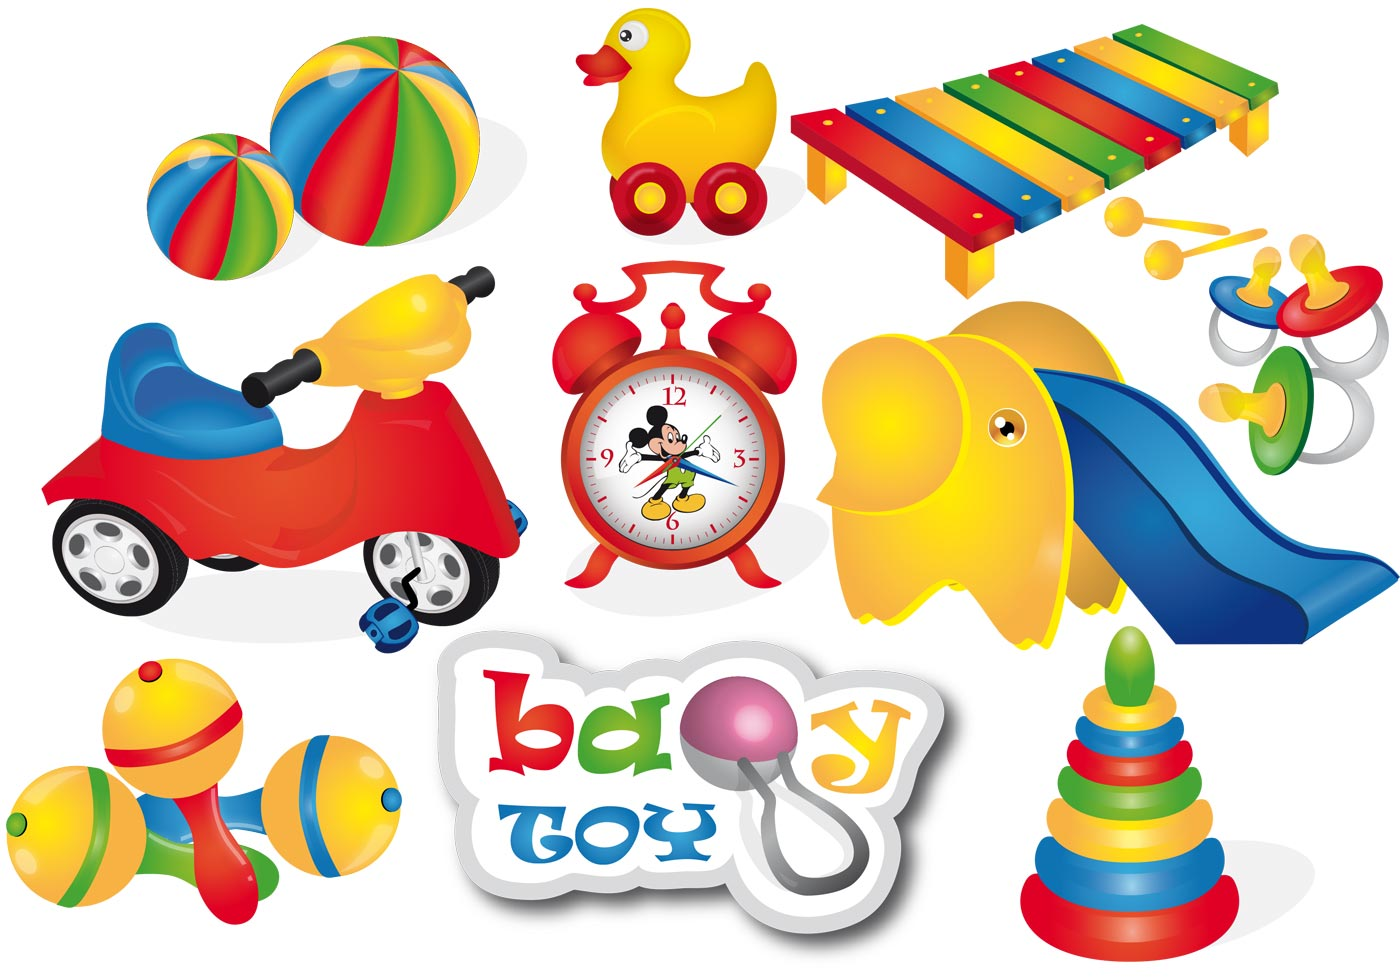 Toys Vector At Getdrawings Com Free For Personal Use Toys Vector